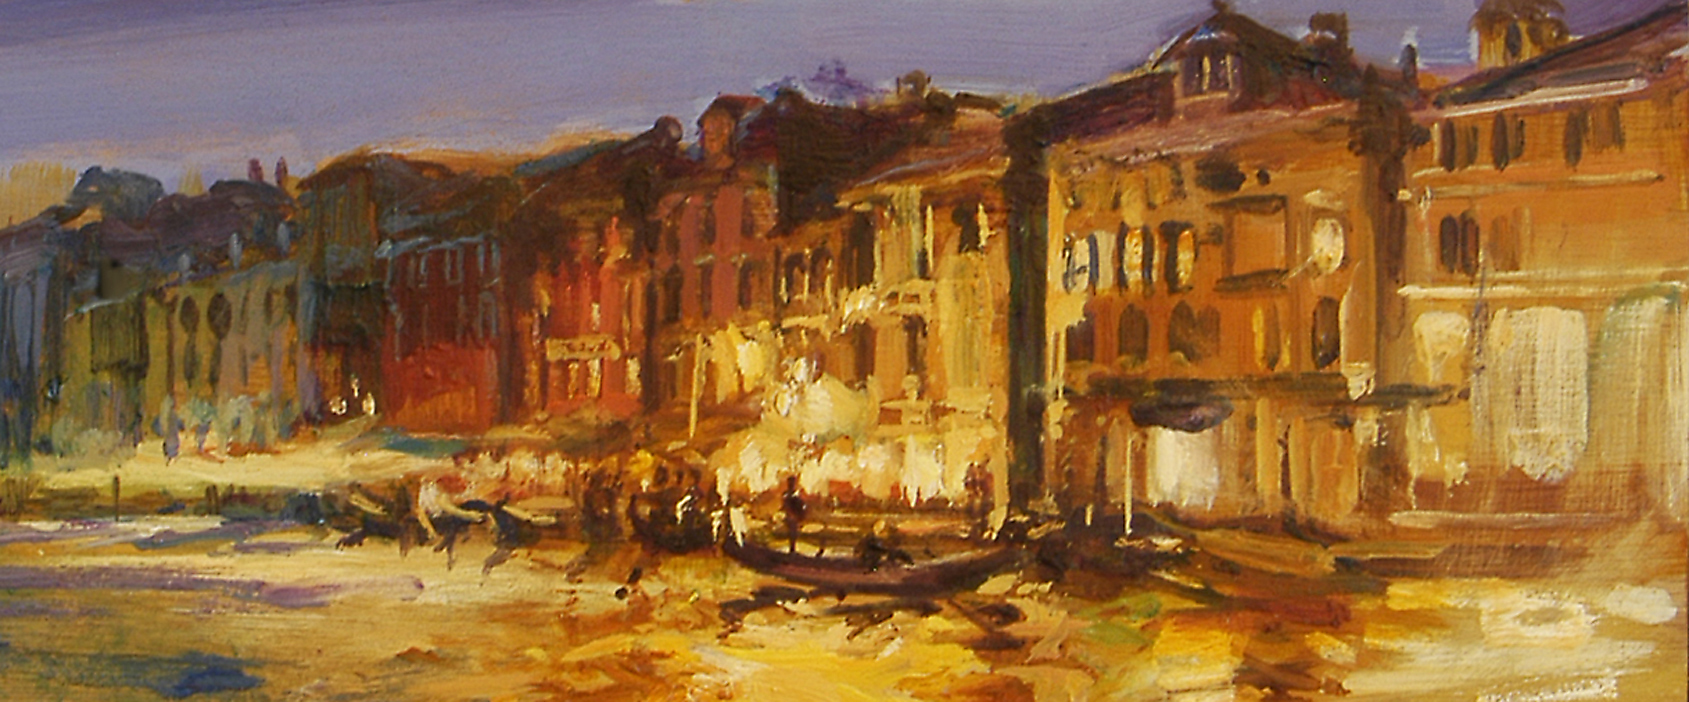 Gondolieri Rialto (sketch) - oil on board - 20 x 48 cm - SOLD